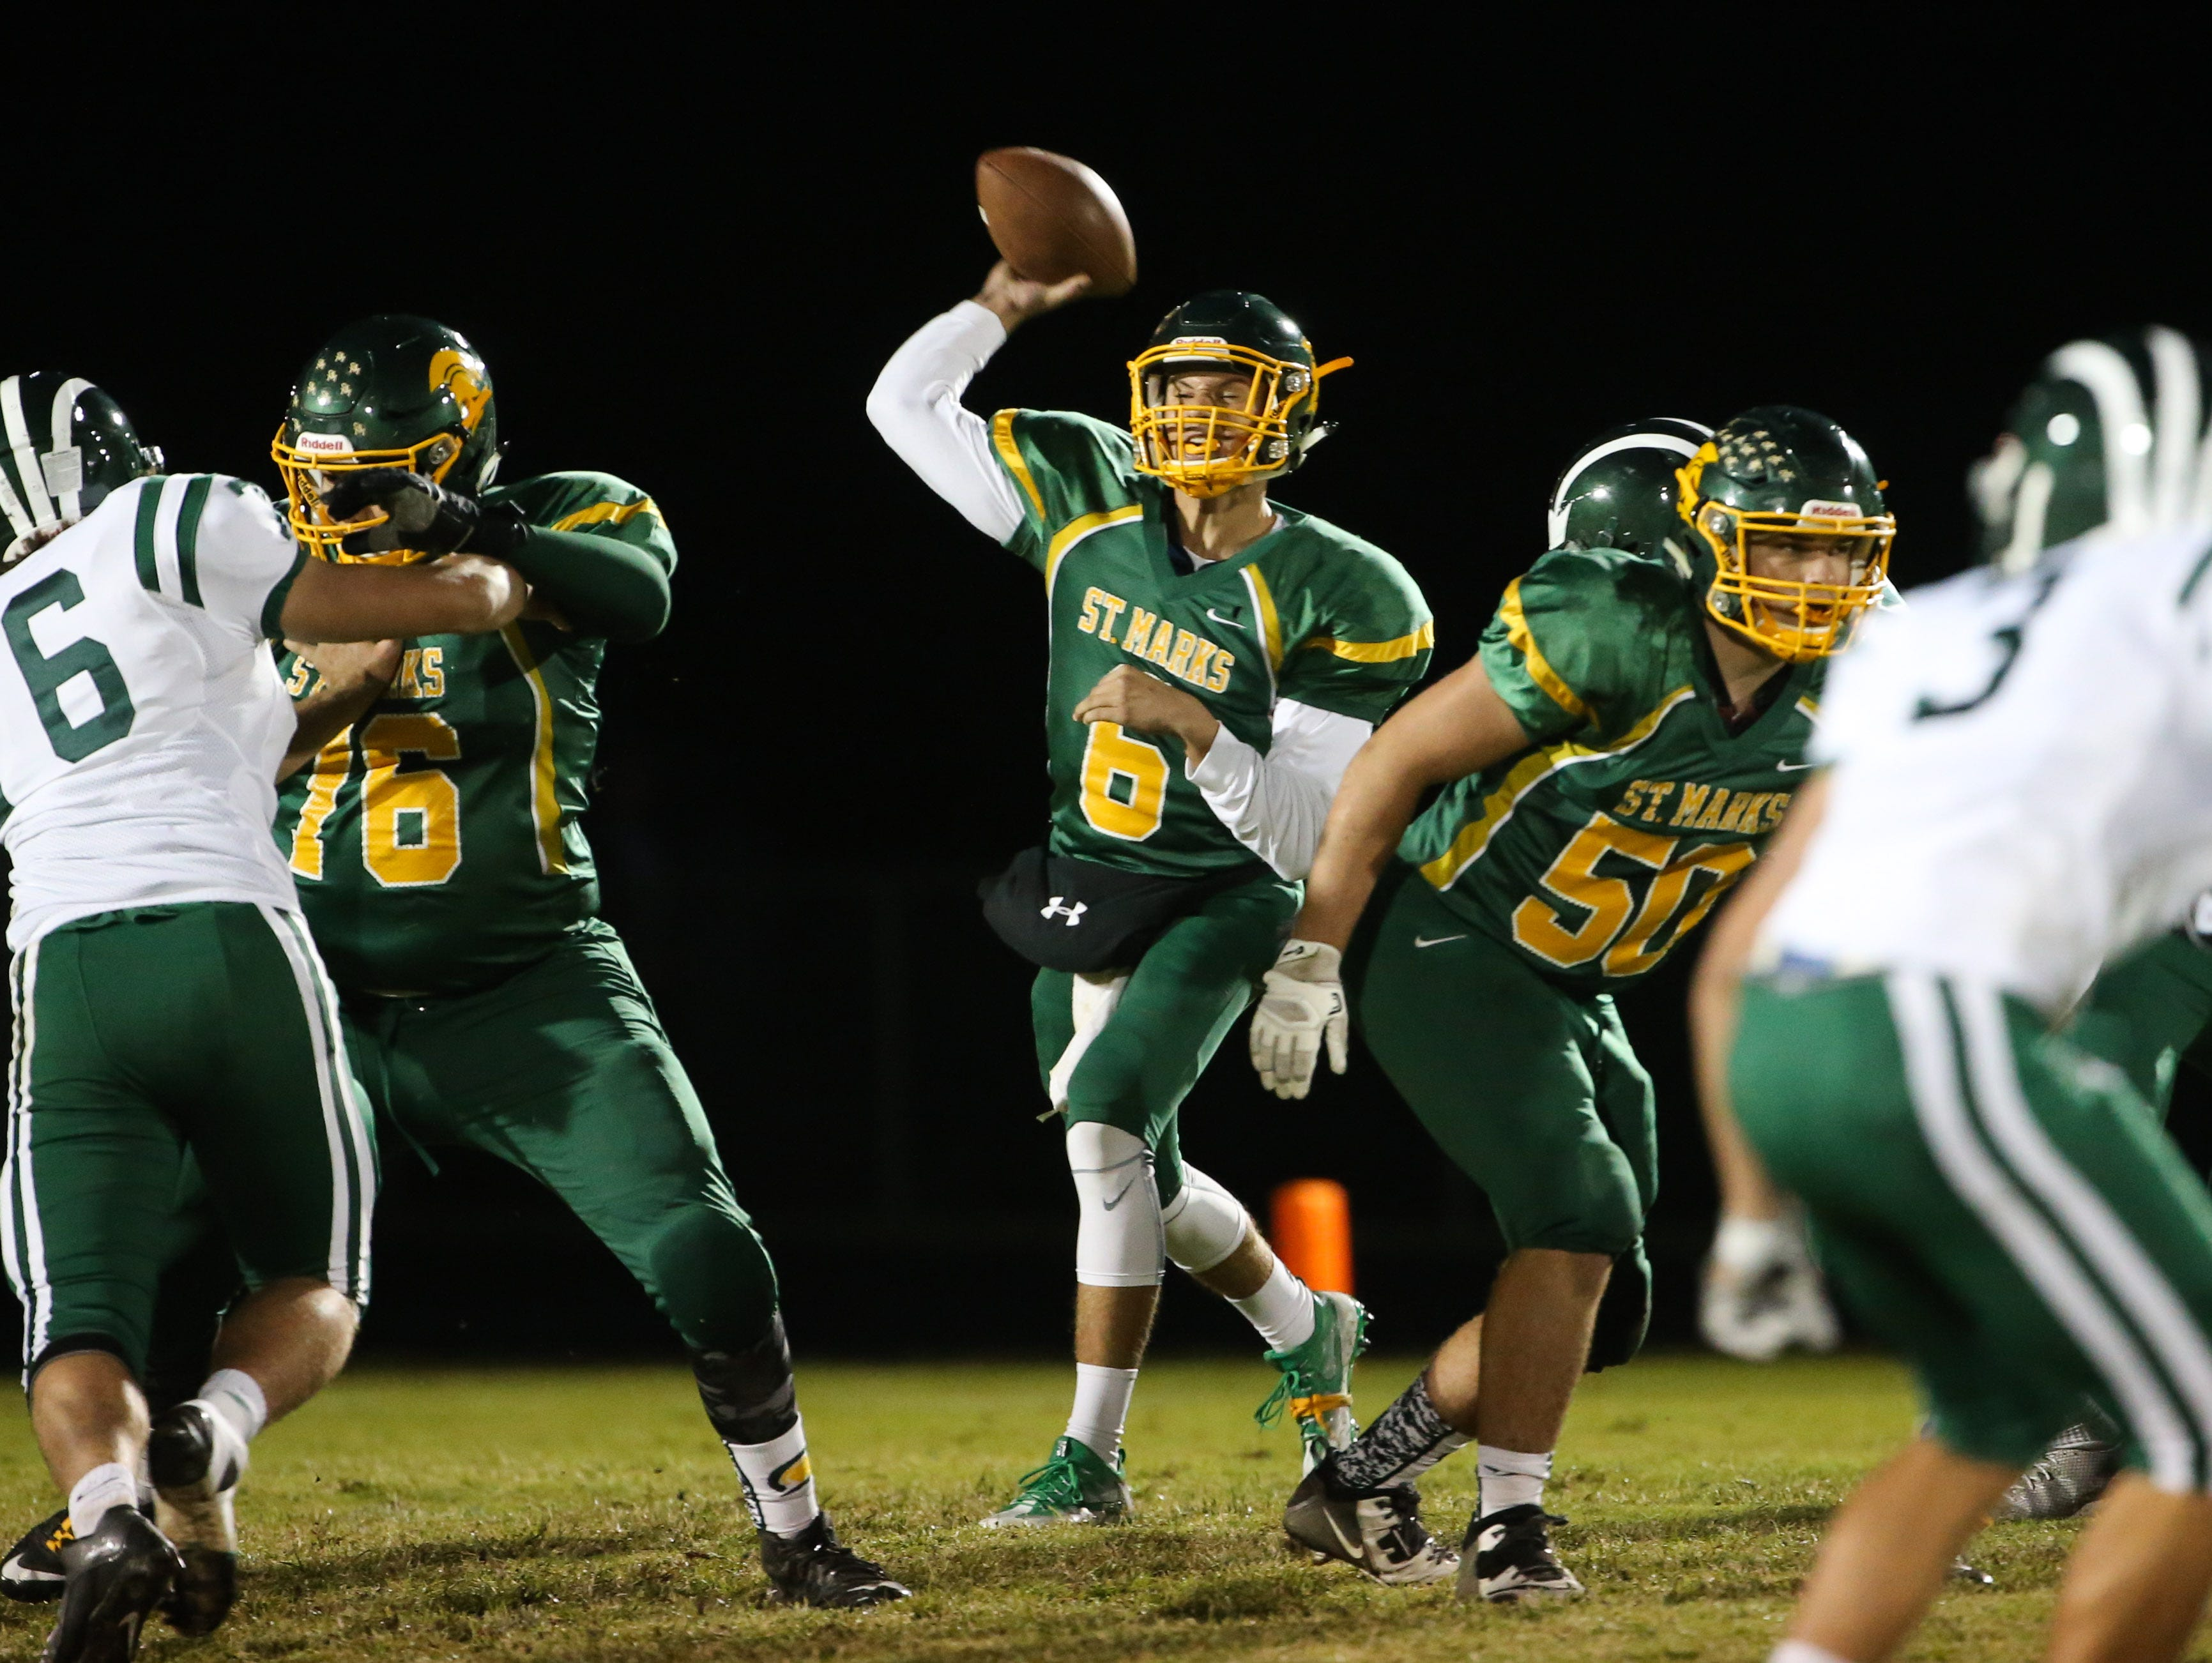 St. Mark's quarterback William Sullivan throws downfield in the second quarter of the Spartans matchup against Archmere at St. Mark's Friday.